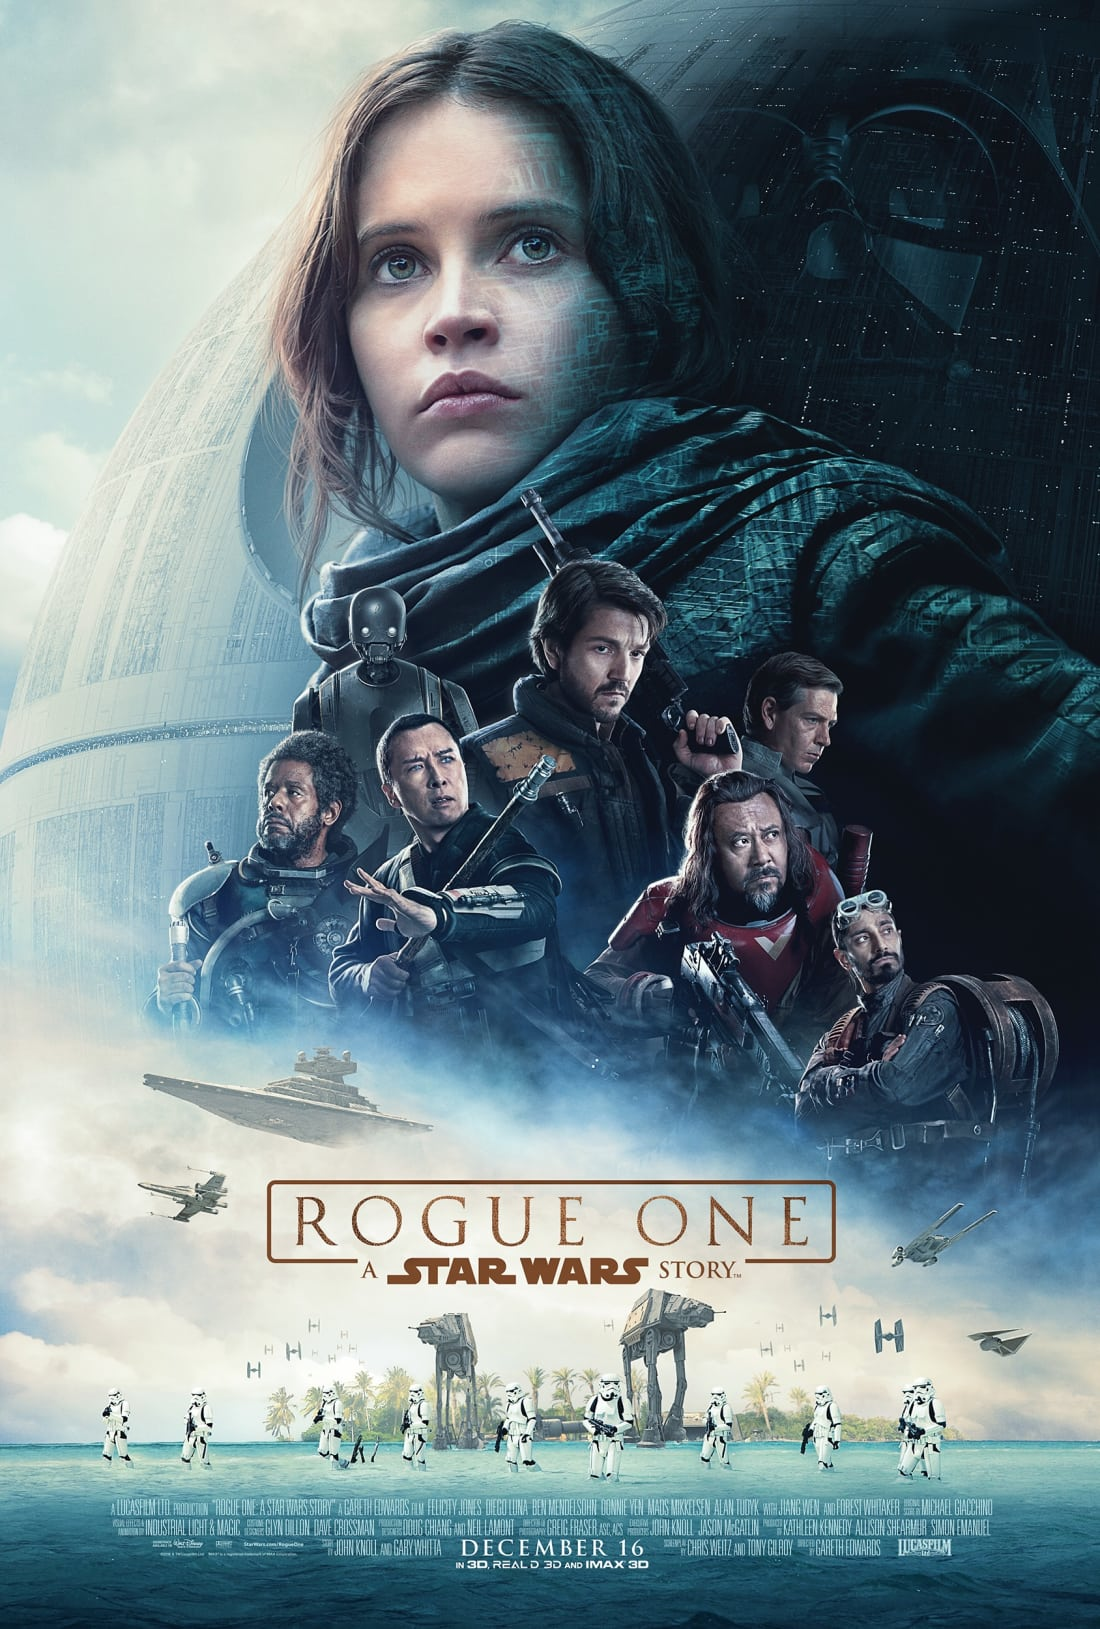 Rogue One: A Star Wars Story (2016) movie poster, property of Disney and Lucasfilm, via Fair Use.